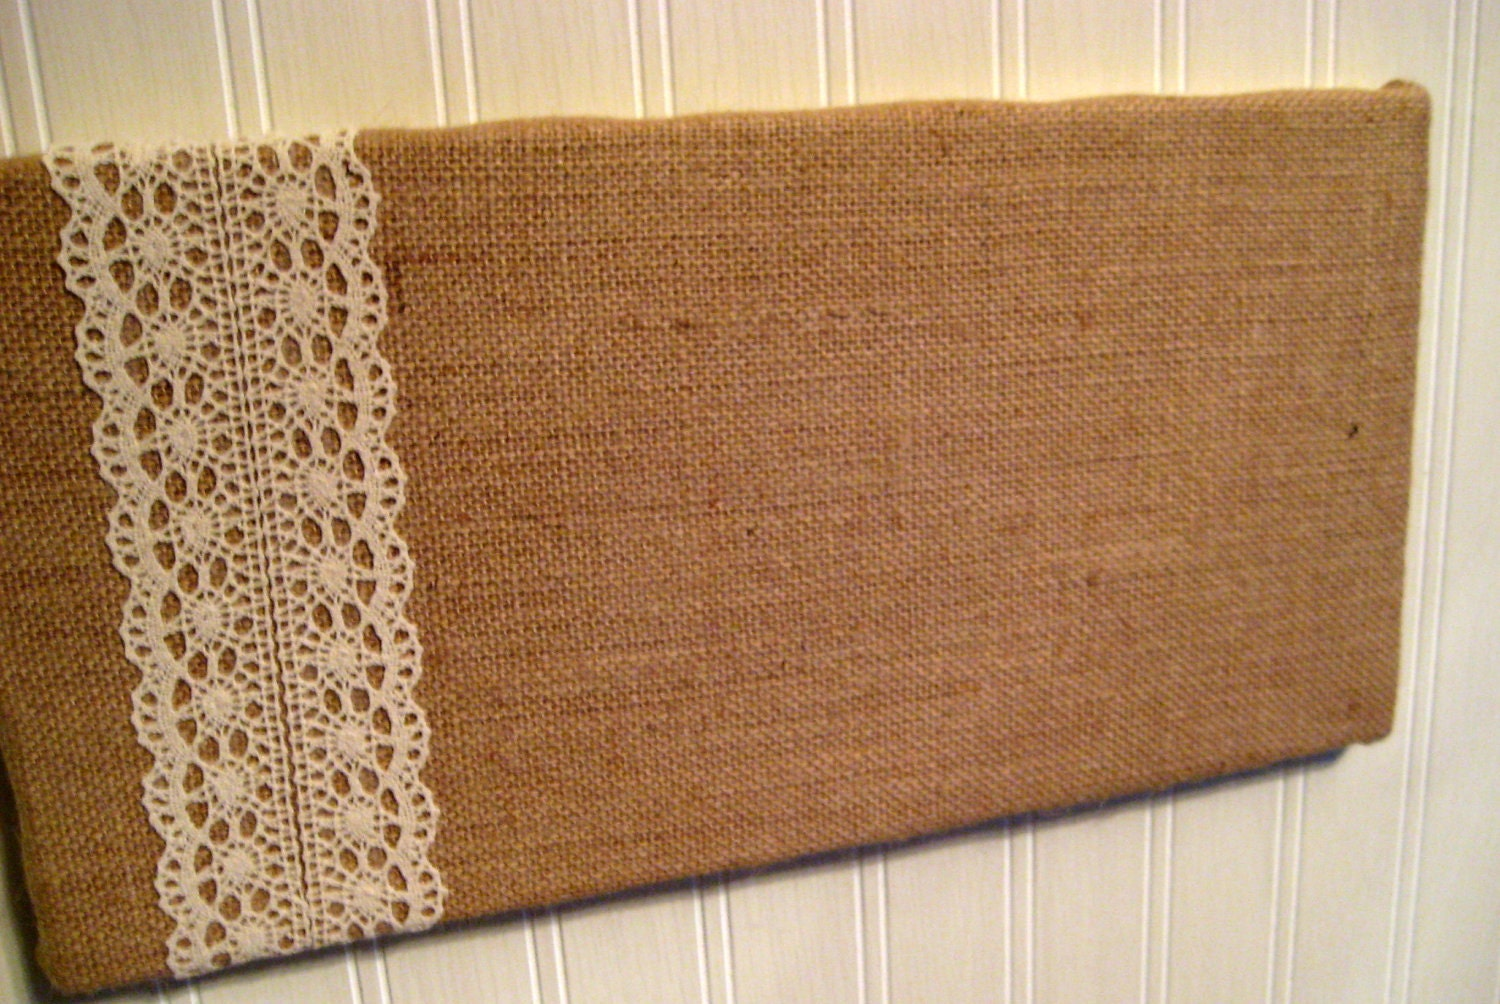 College dorm country chic burlap and lace bulletin board for Burlap and lace bedroom